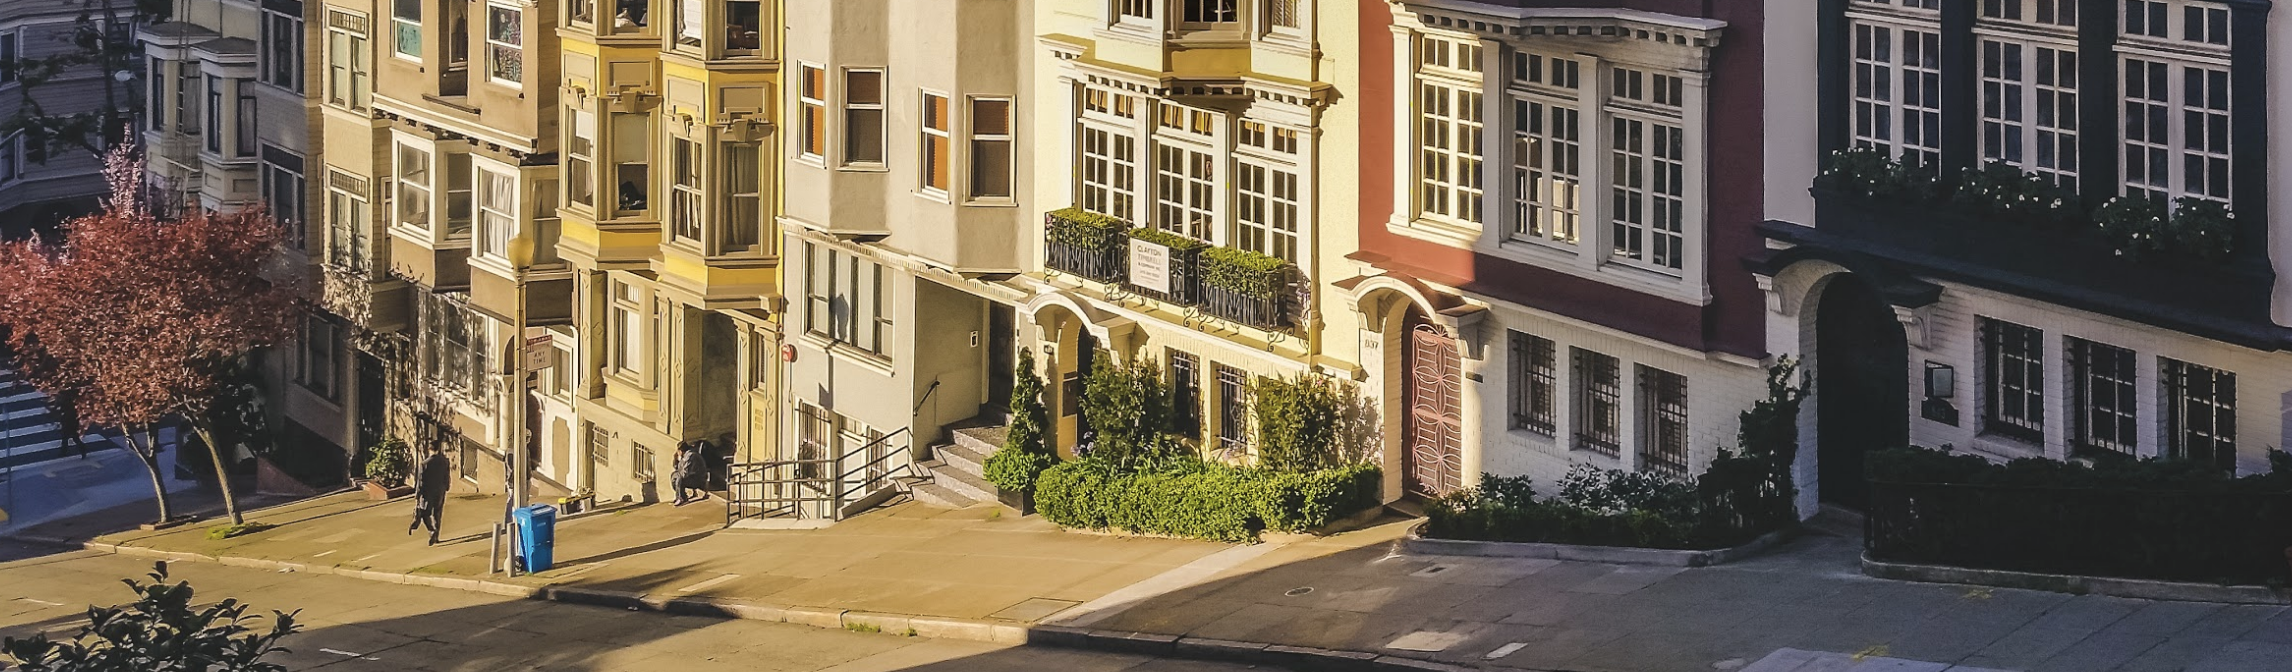 3 Easy Ways To Improve Your Apartment Building Exterior thumbnail